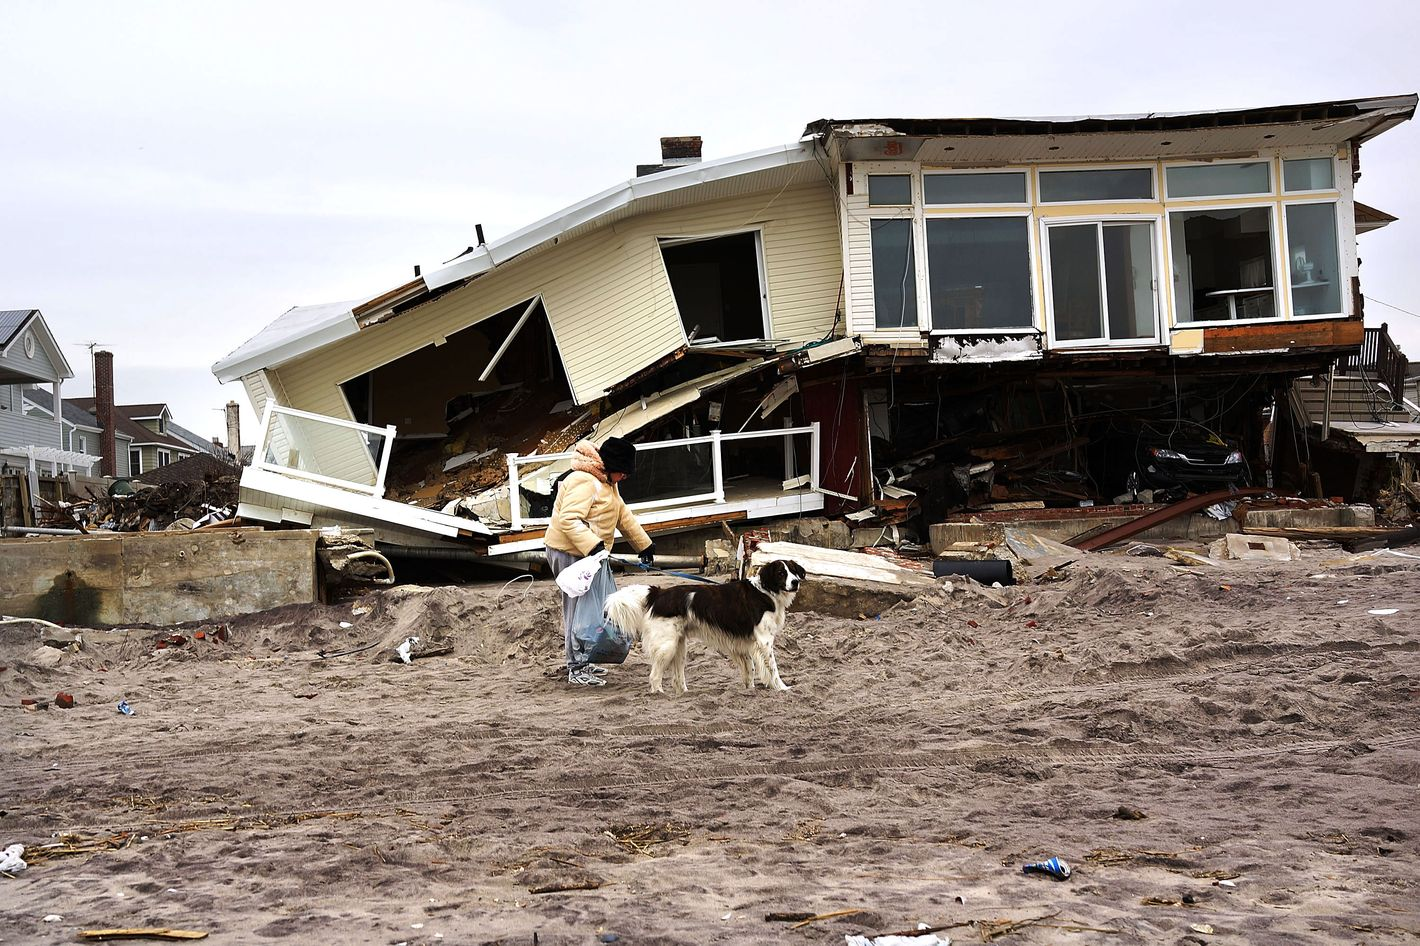 A woman walks with her dog by homes damaged by Hurricane Sandy along the beach in the Rockaways on January 15, 2013 in New York City. A $50.7 billion Superstorm Sandy aid package is expected to be voted on today in the House. The package, which has come under criticism by some fiscal conservatives, is being heavily pushed by Northeastern lawmakers. The money would be spent on immediate needs to the region including $5.4 billion for New York and New Jersey transit systems and $5.4 billion for the Federal Emergency Management Agency's disaster relief aid fund.